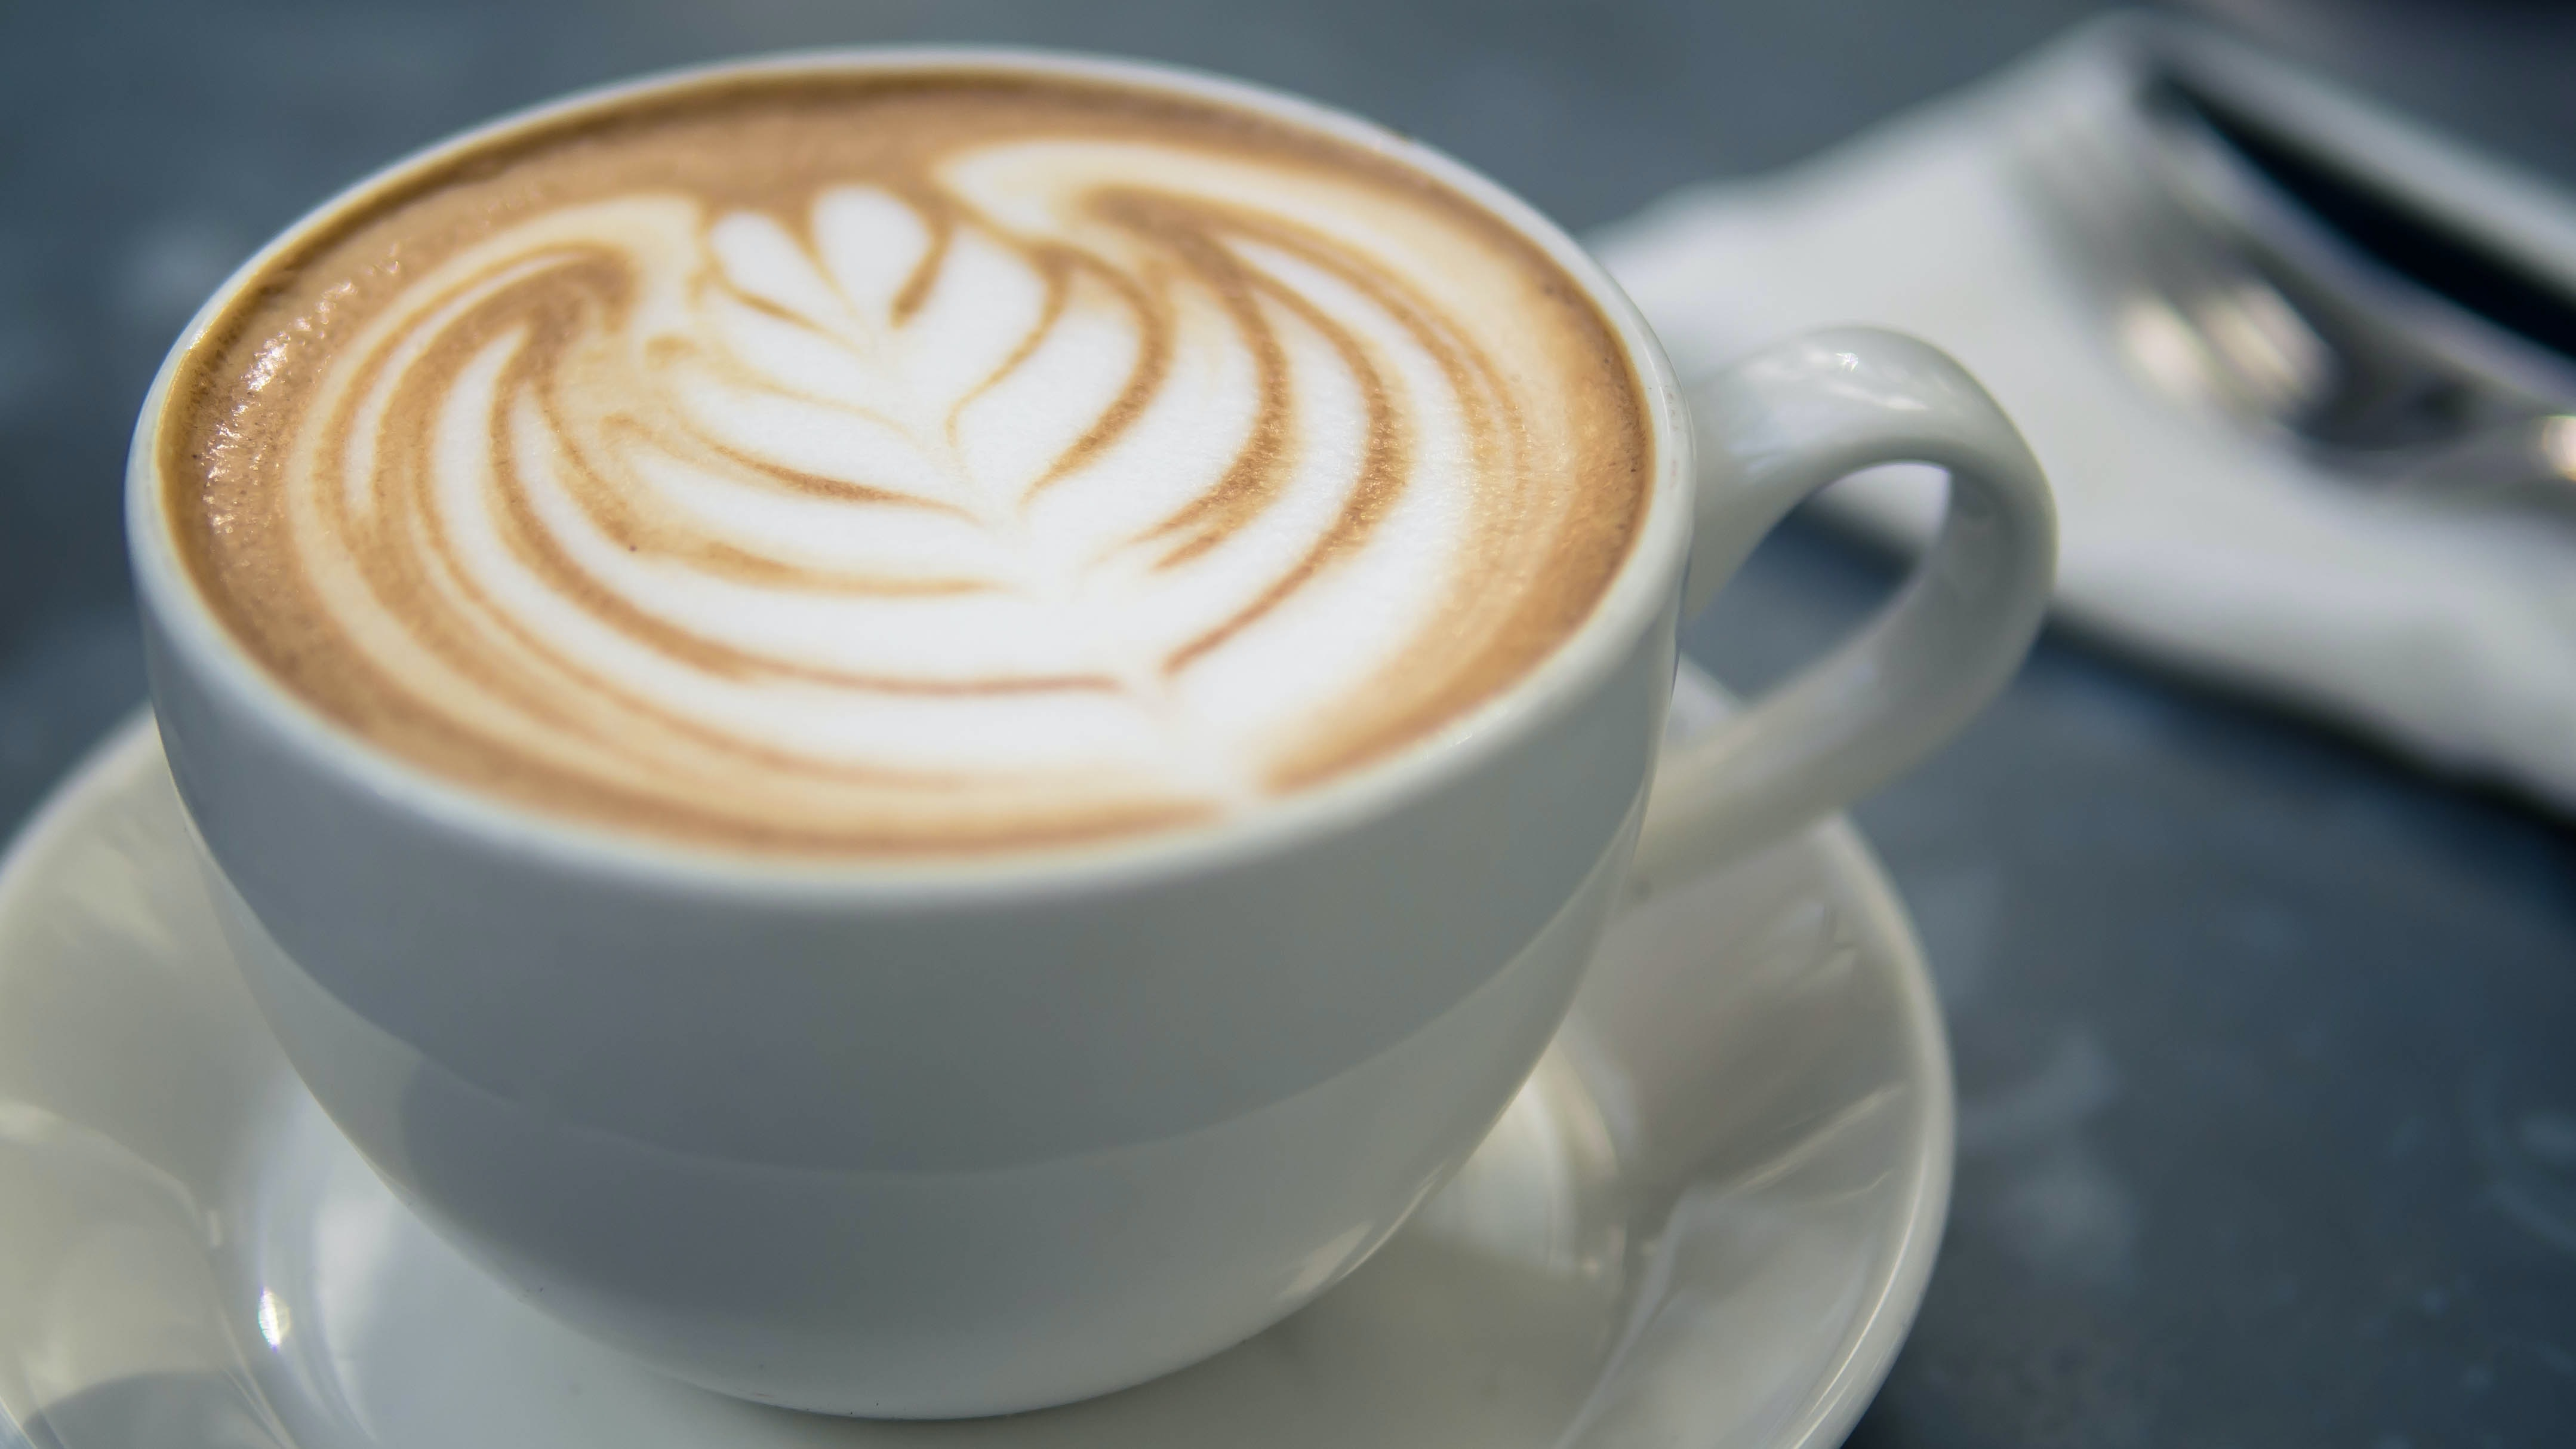 Close-up of a cup of cappuccino with latte art